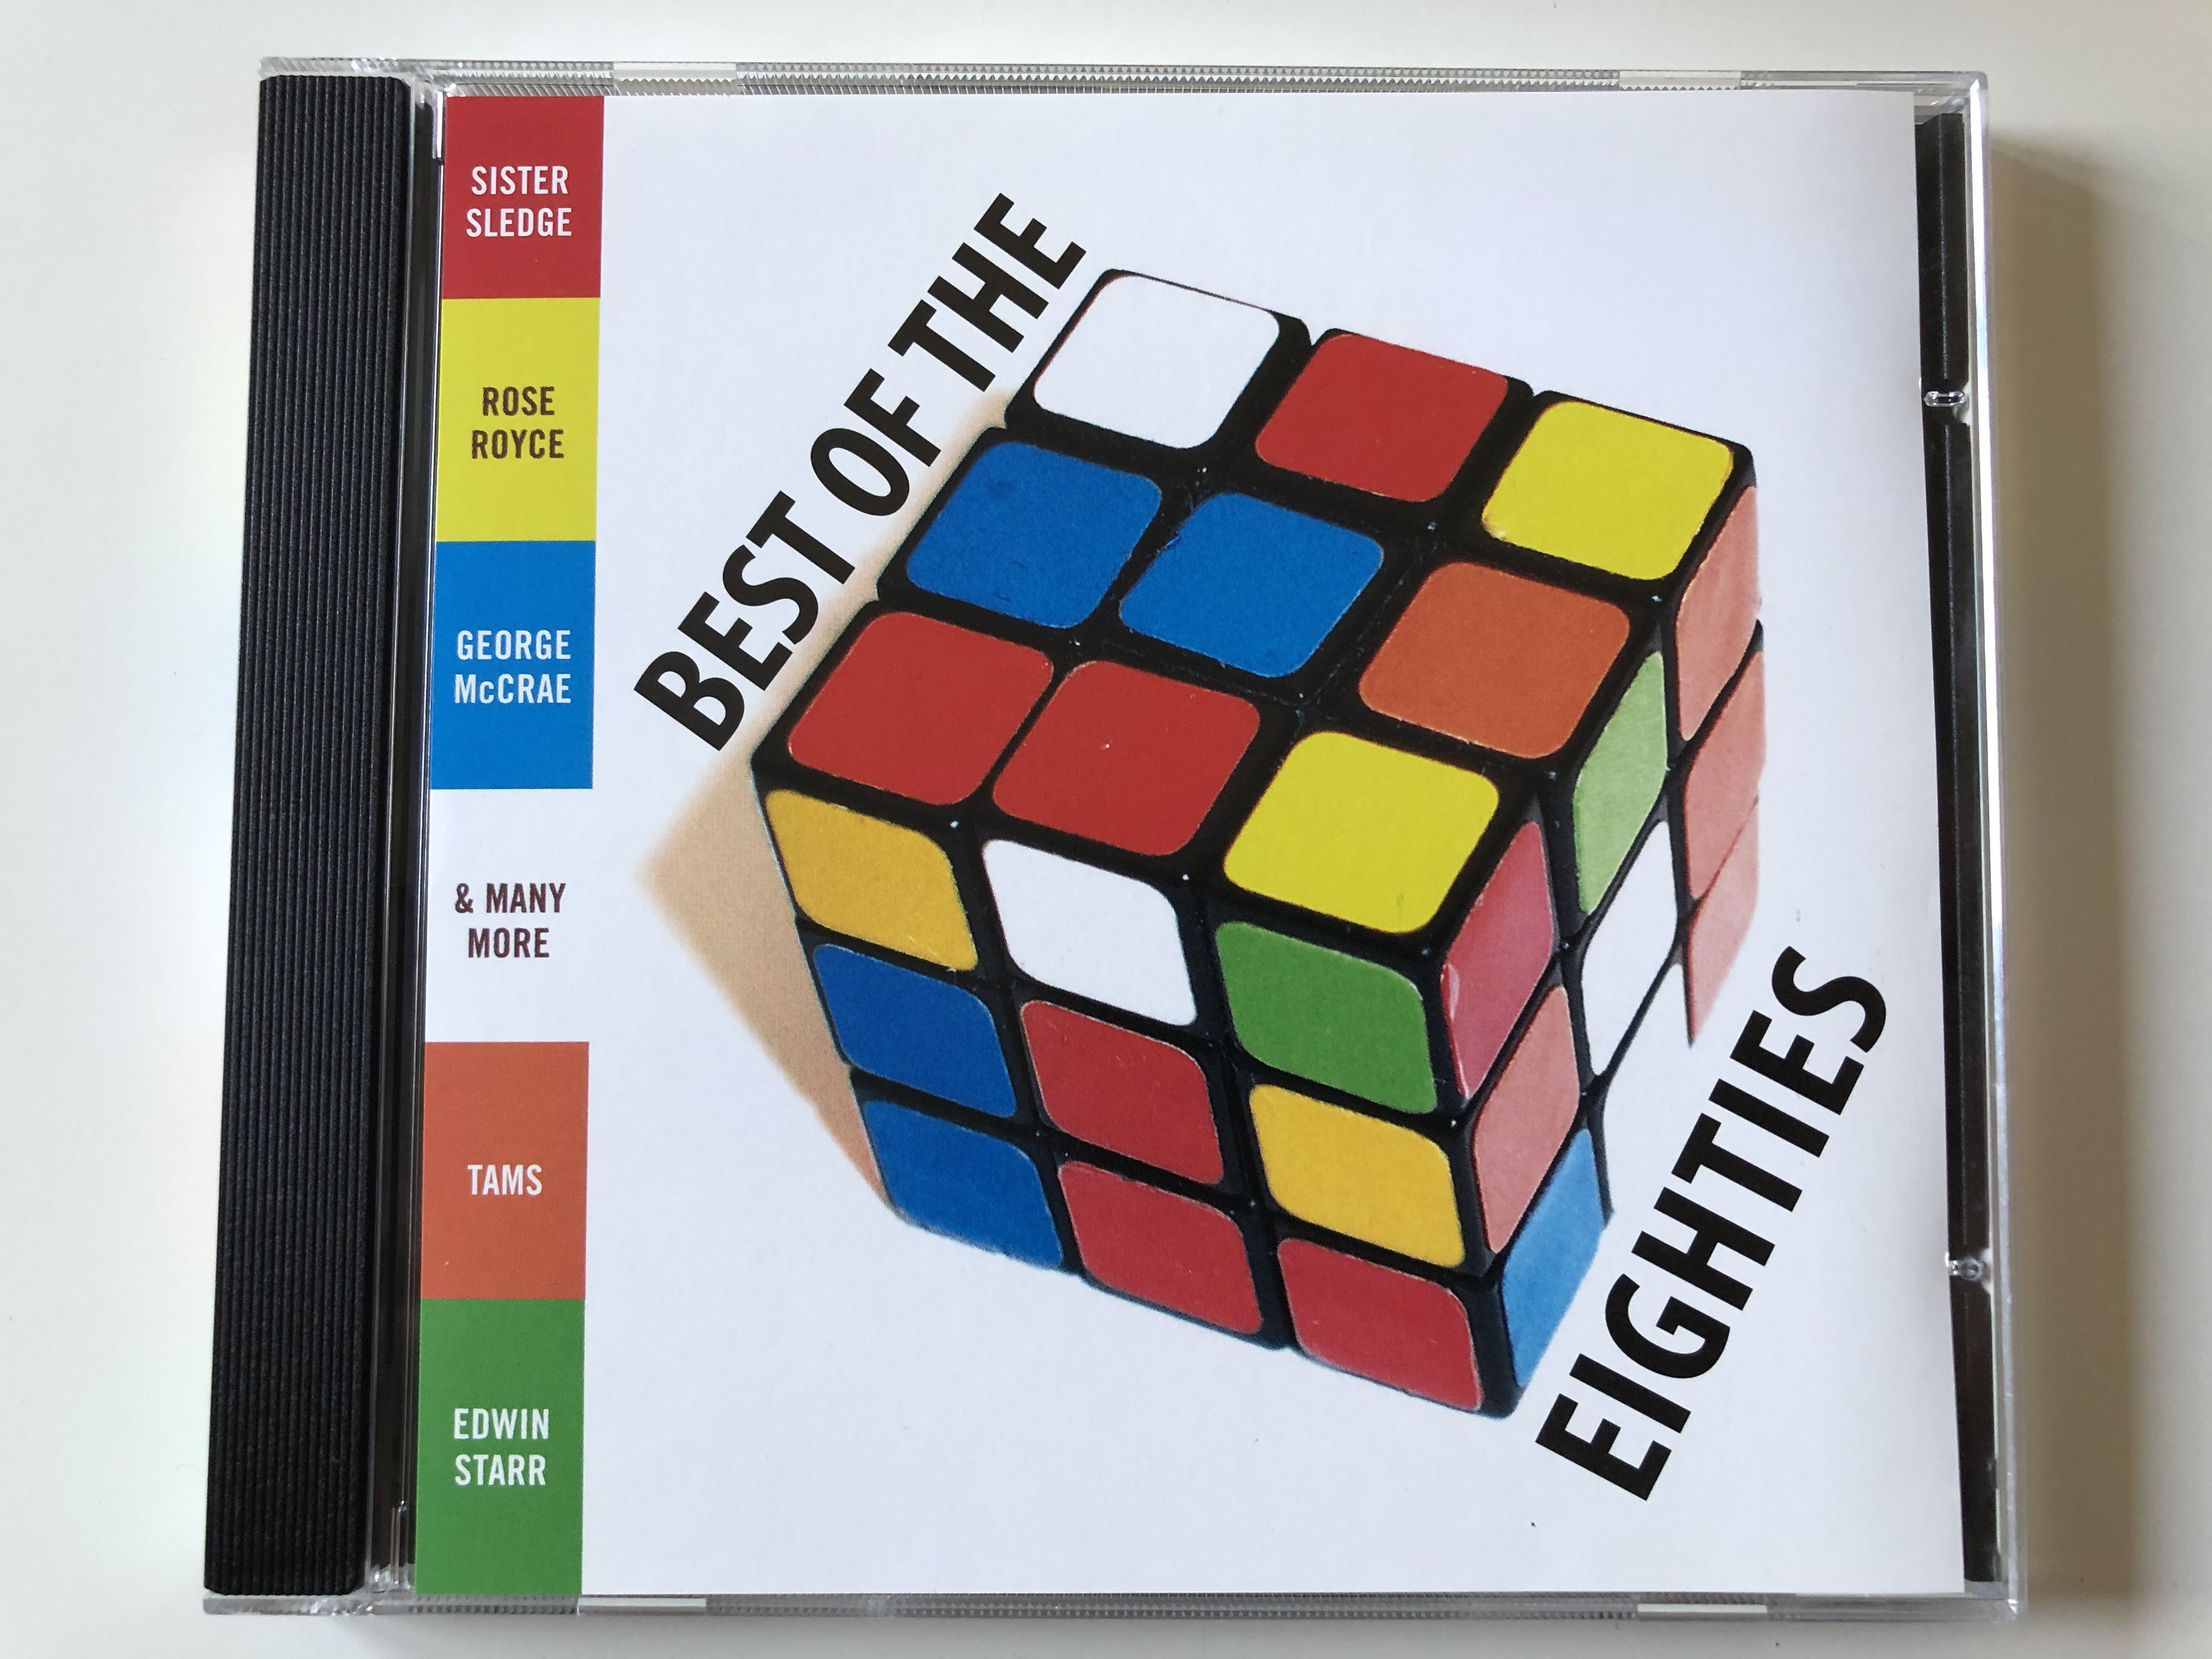 best-of-the-eighties-sister-sledge-rose-royce-george-mccrae-tams-edwin-starr-many-more-fox-music-consolidated-ltd.-audio-cd-fu-1083-1-.jpg